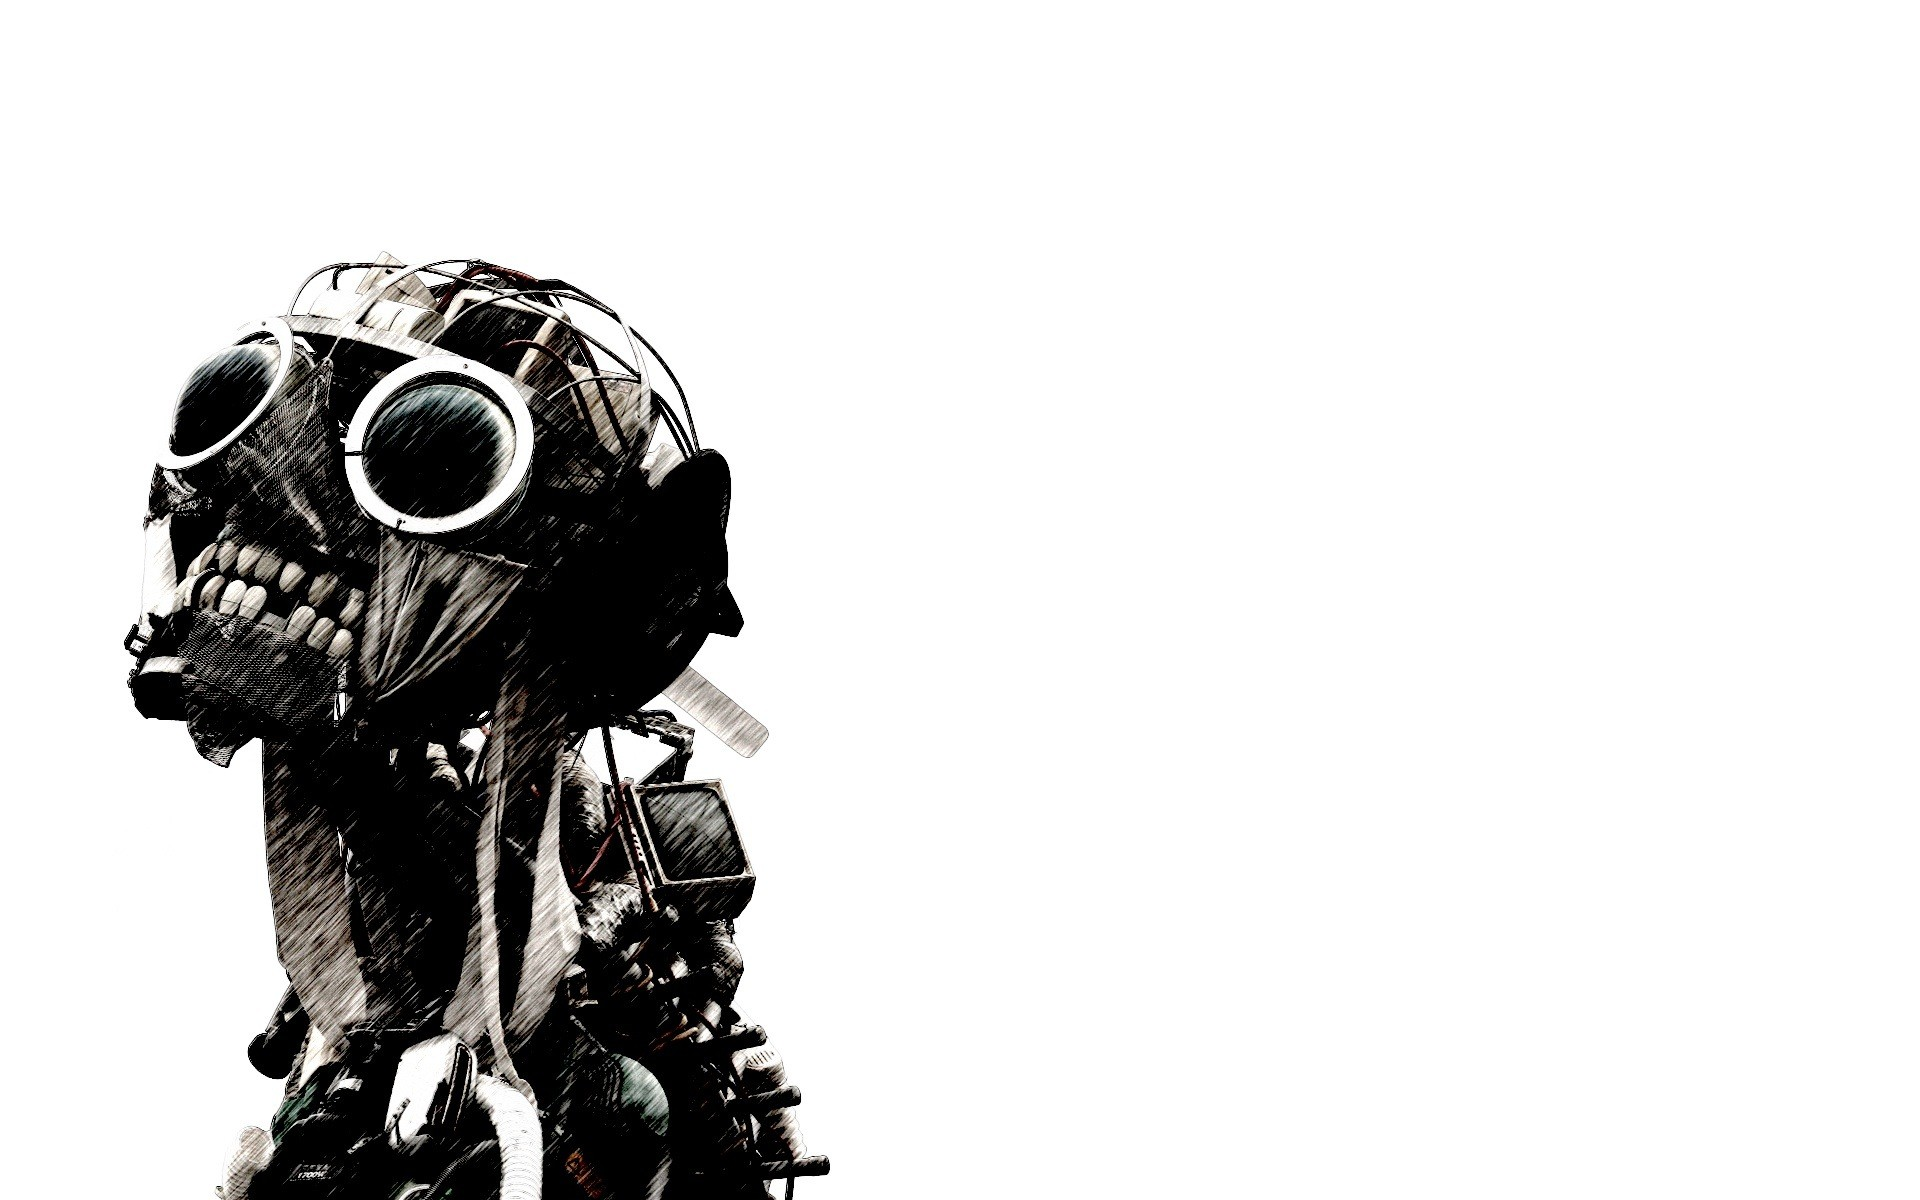 Sci Fi - Dark  - Zombie - Monster - Mask Wallpaper